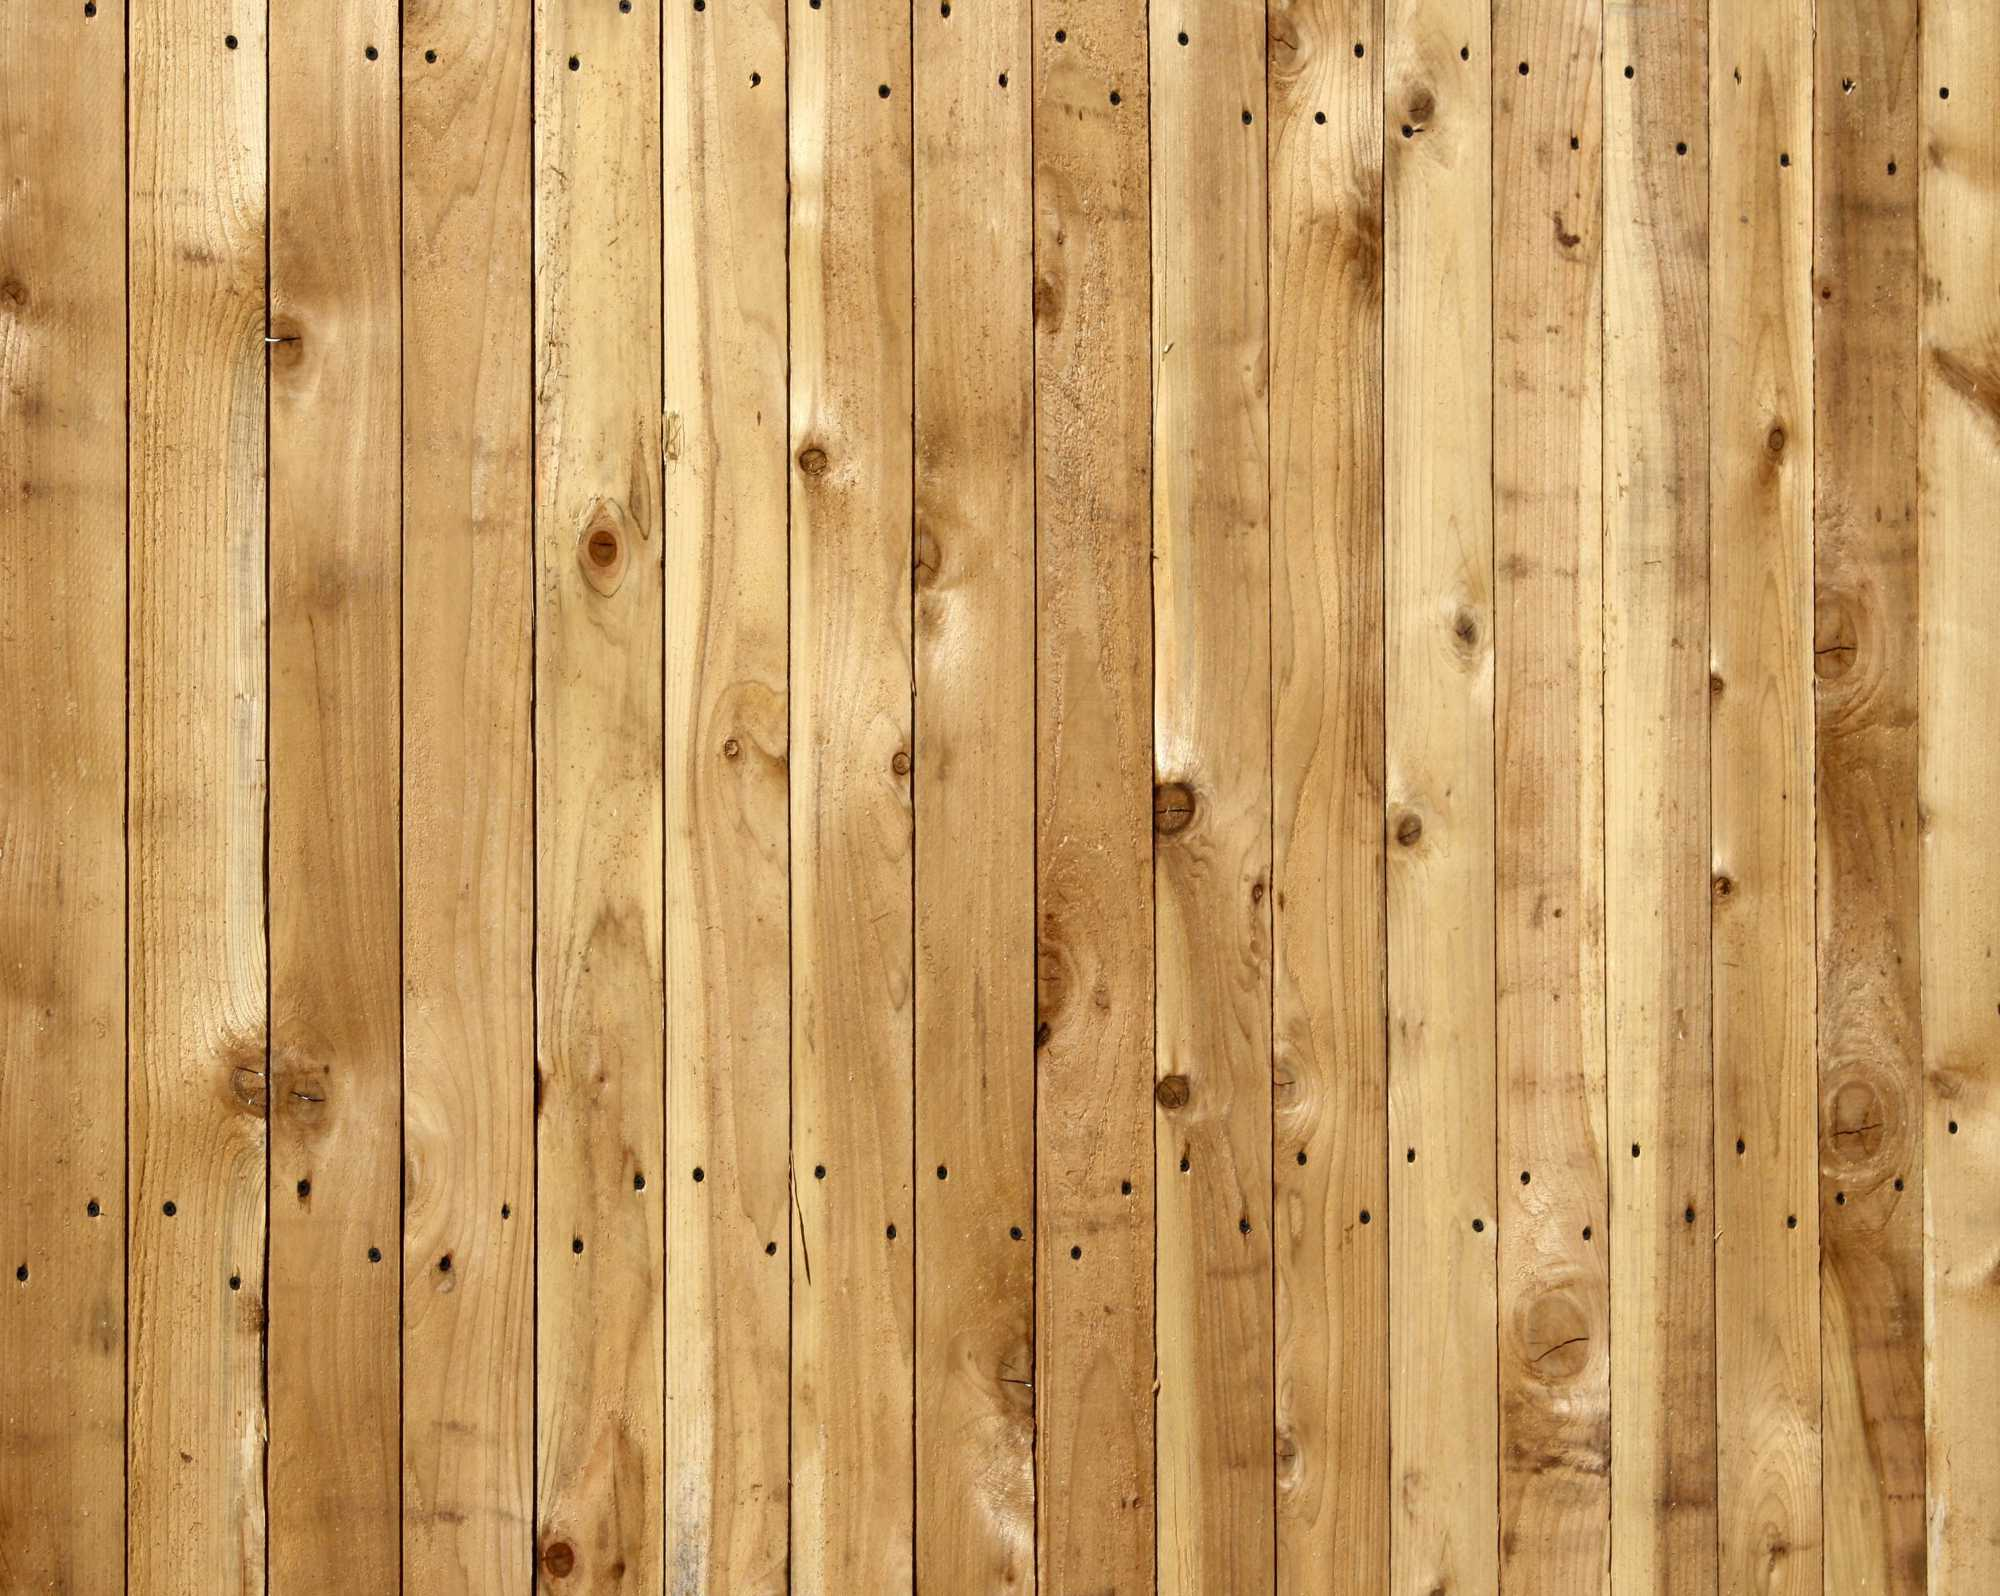 Wooden fence boards background image wallpaper